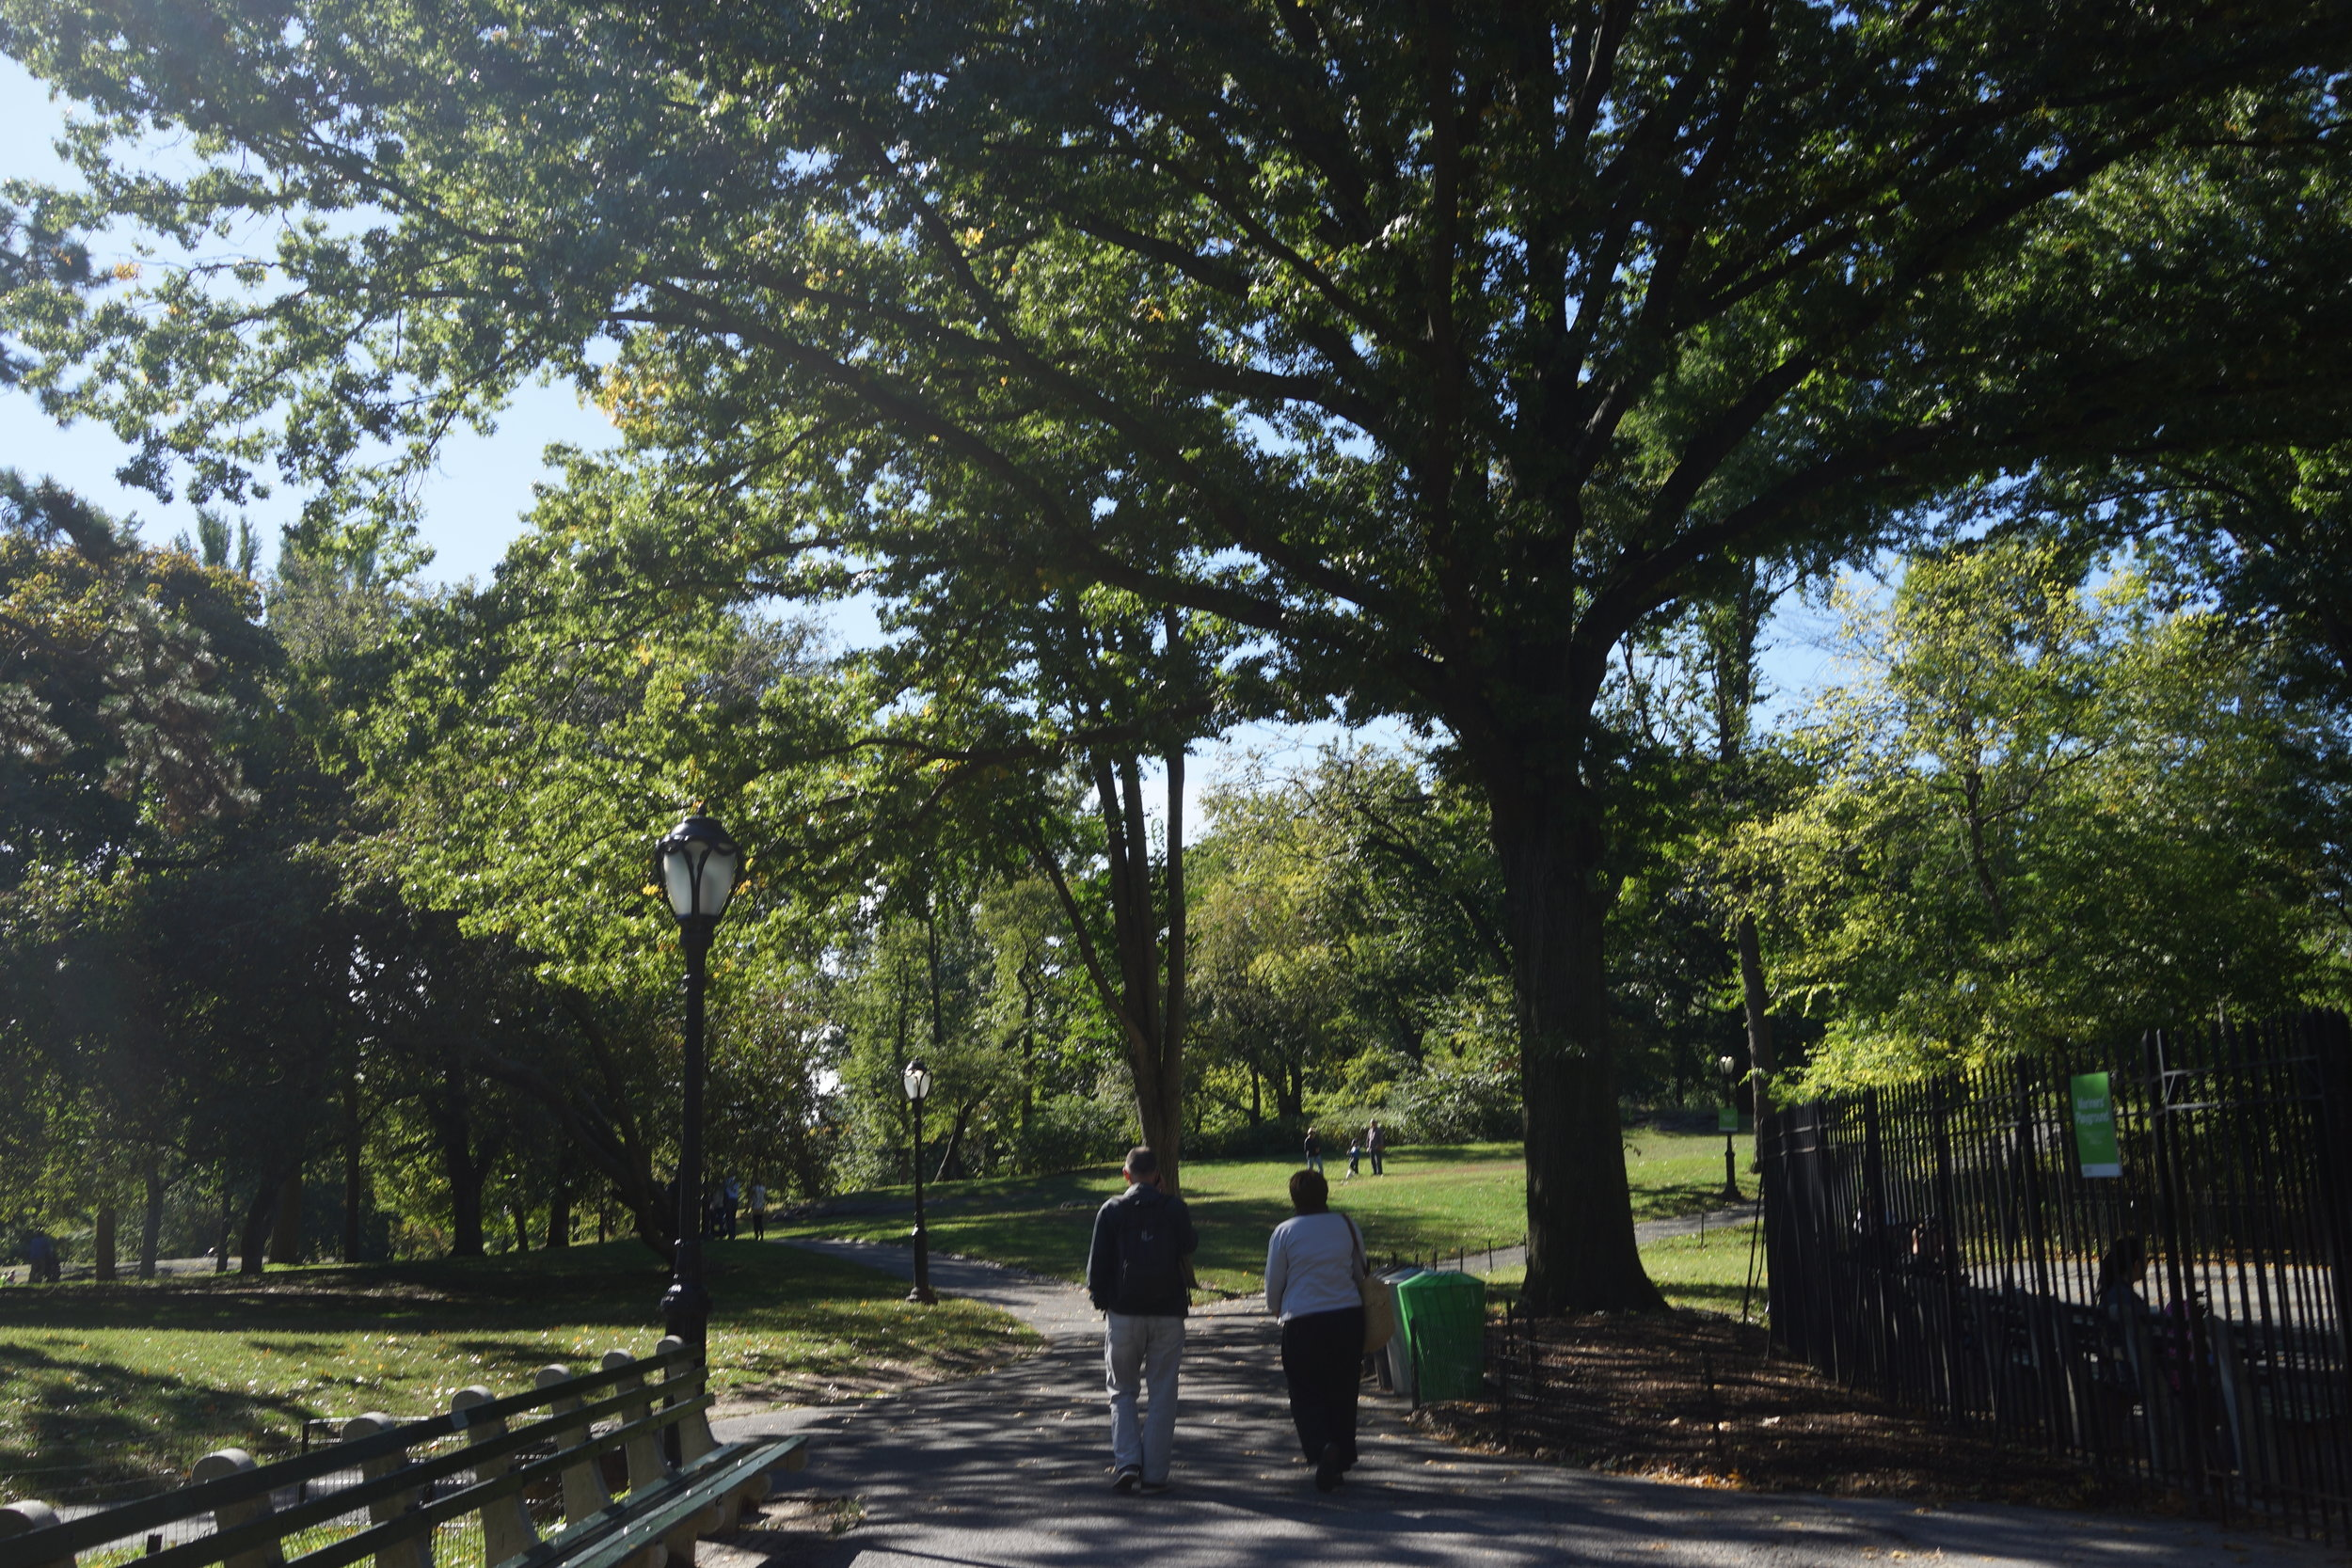 We can't all have an Olmsted park, but thoughtful landscape design goes a long way.